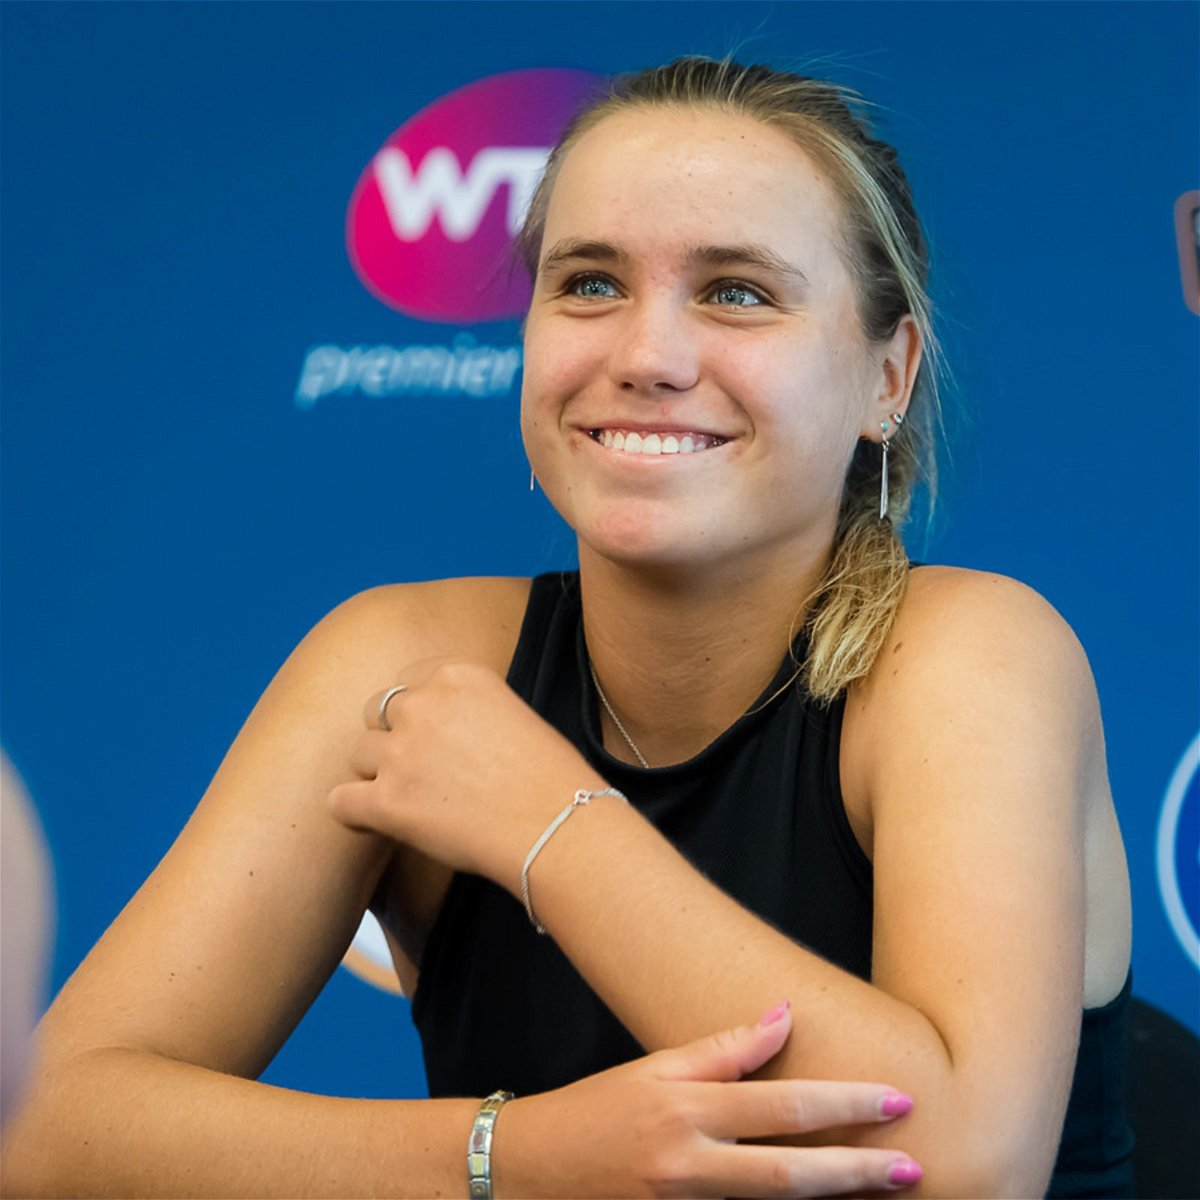 Sofia Kenin Reveals Her Favourite Surface And Tournament Essentiallysports